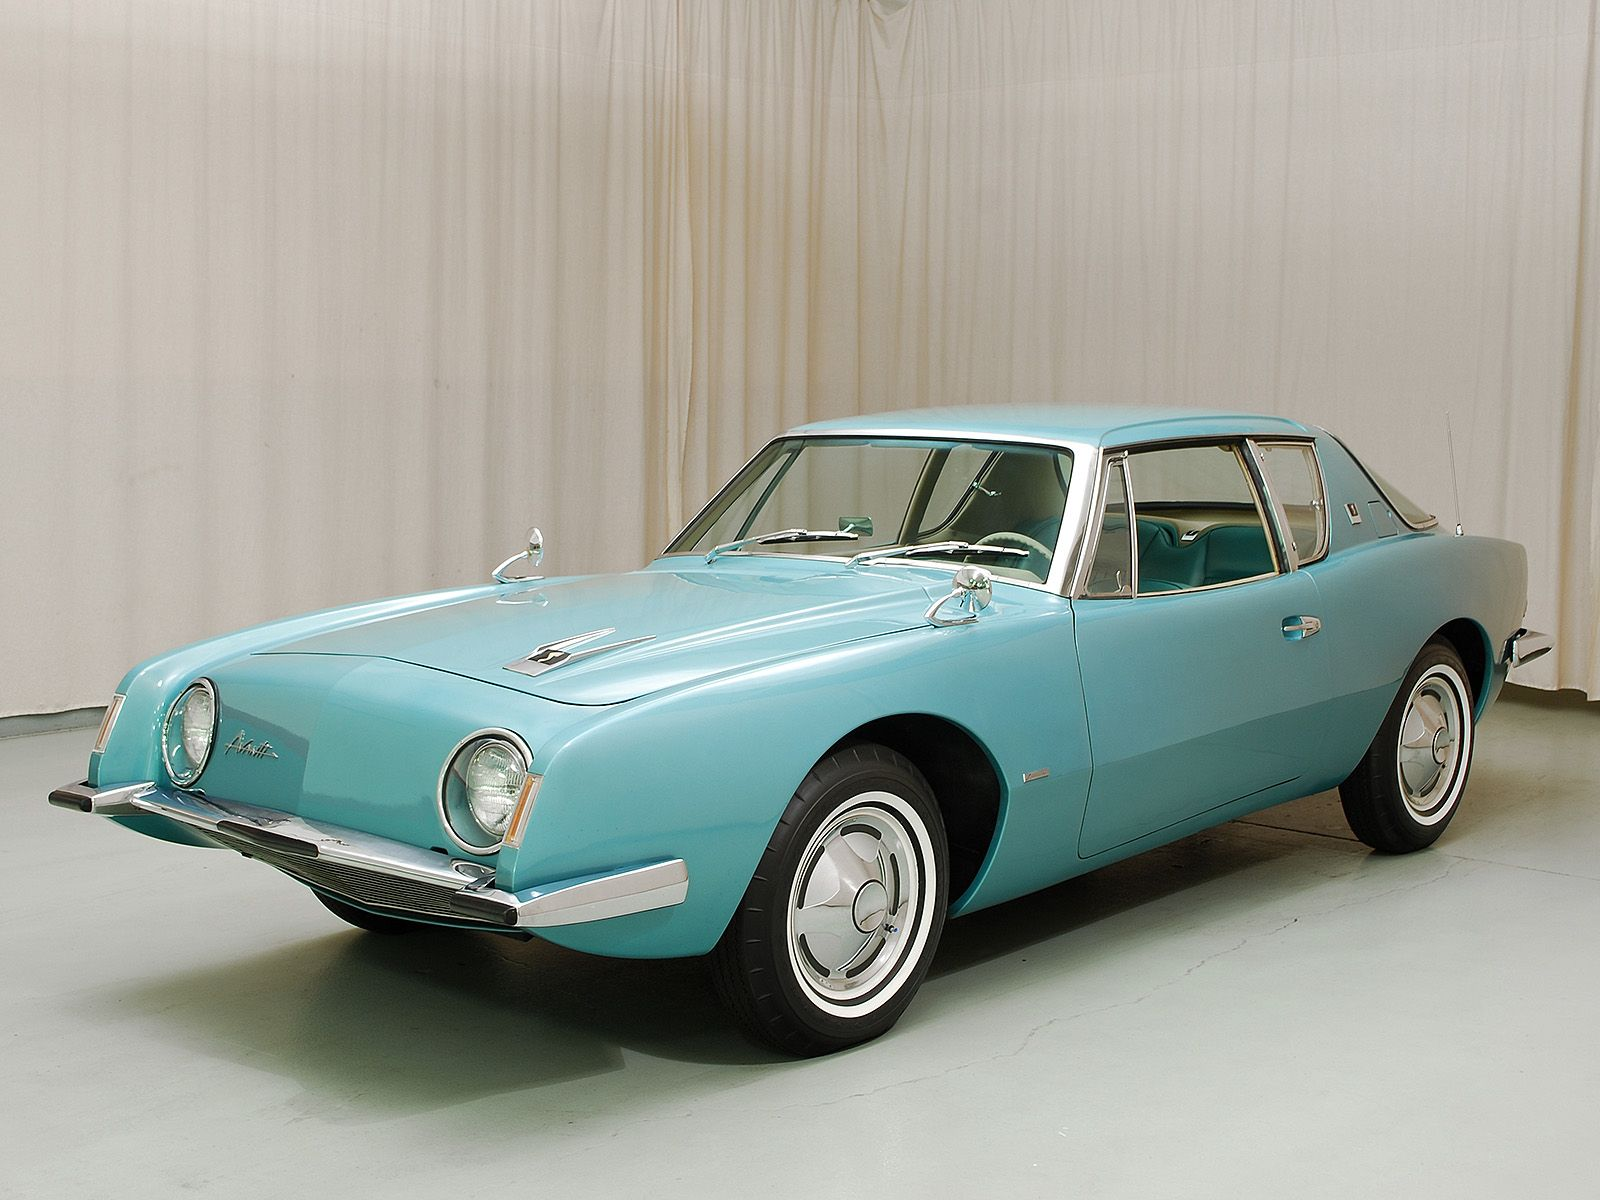 1963 studebaker avanti r2 unusual and rare these cars. Black Bedroom Furniture Sets. Home Design Ideas